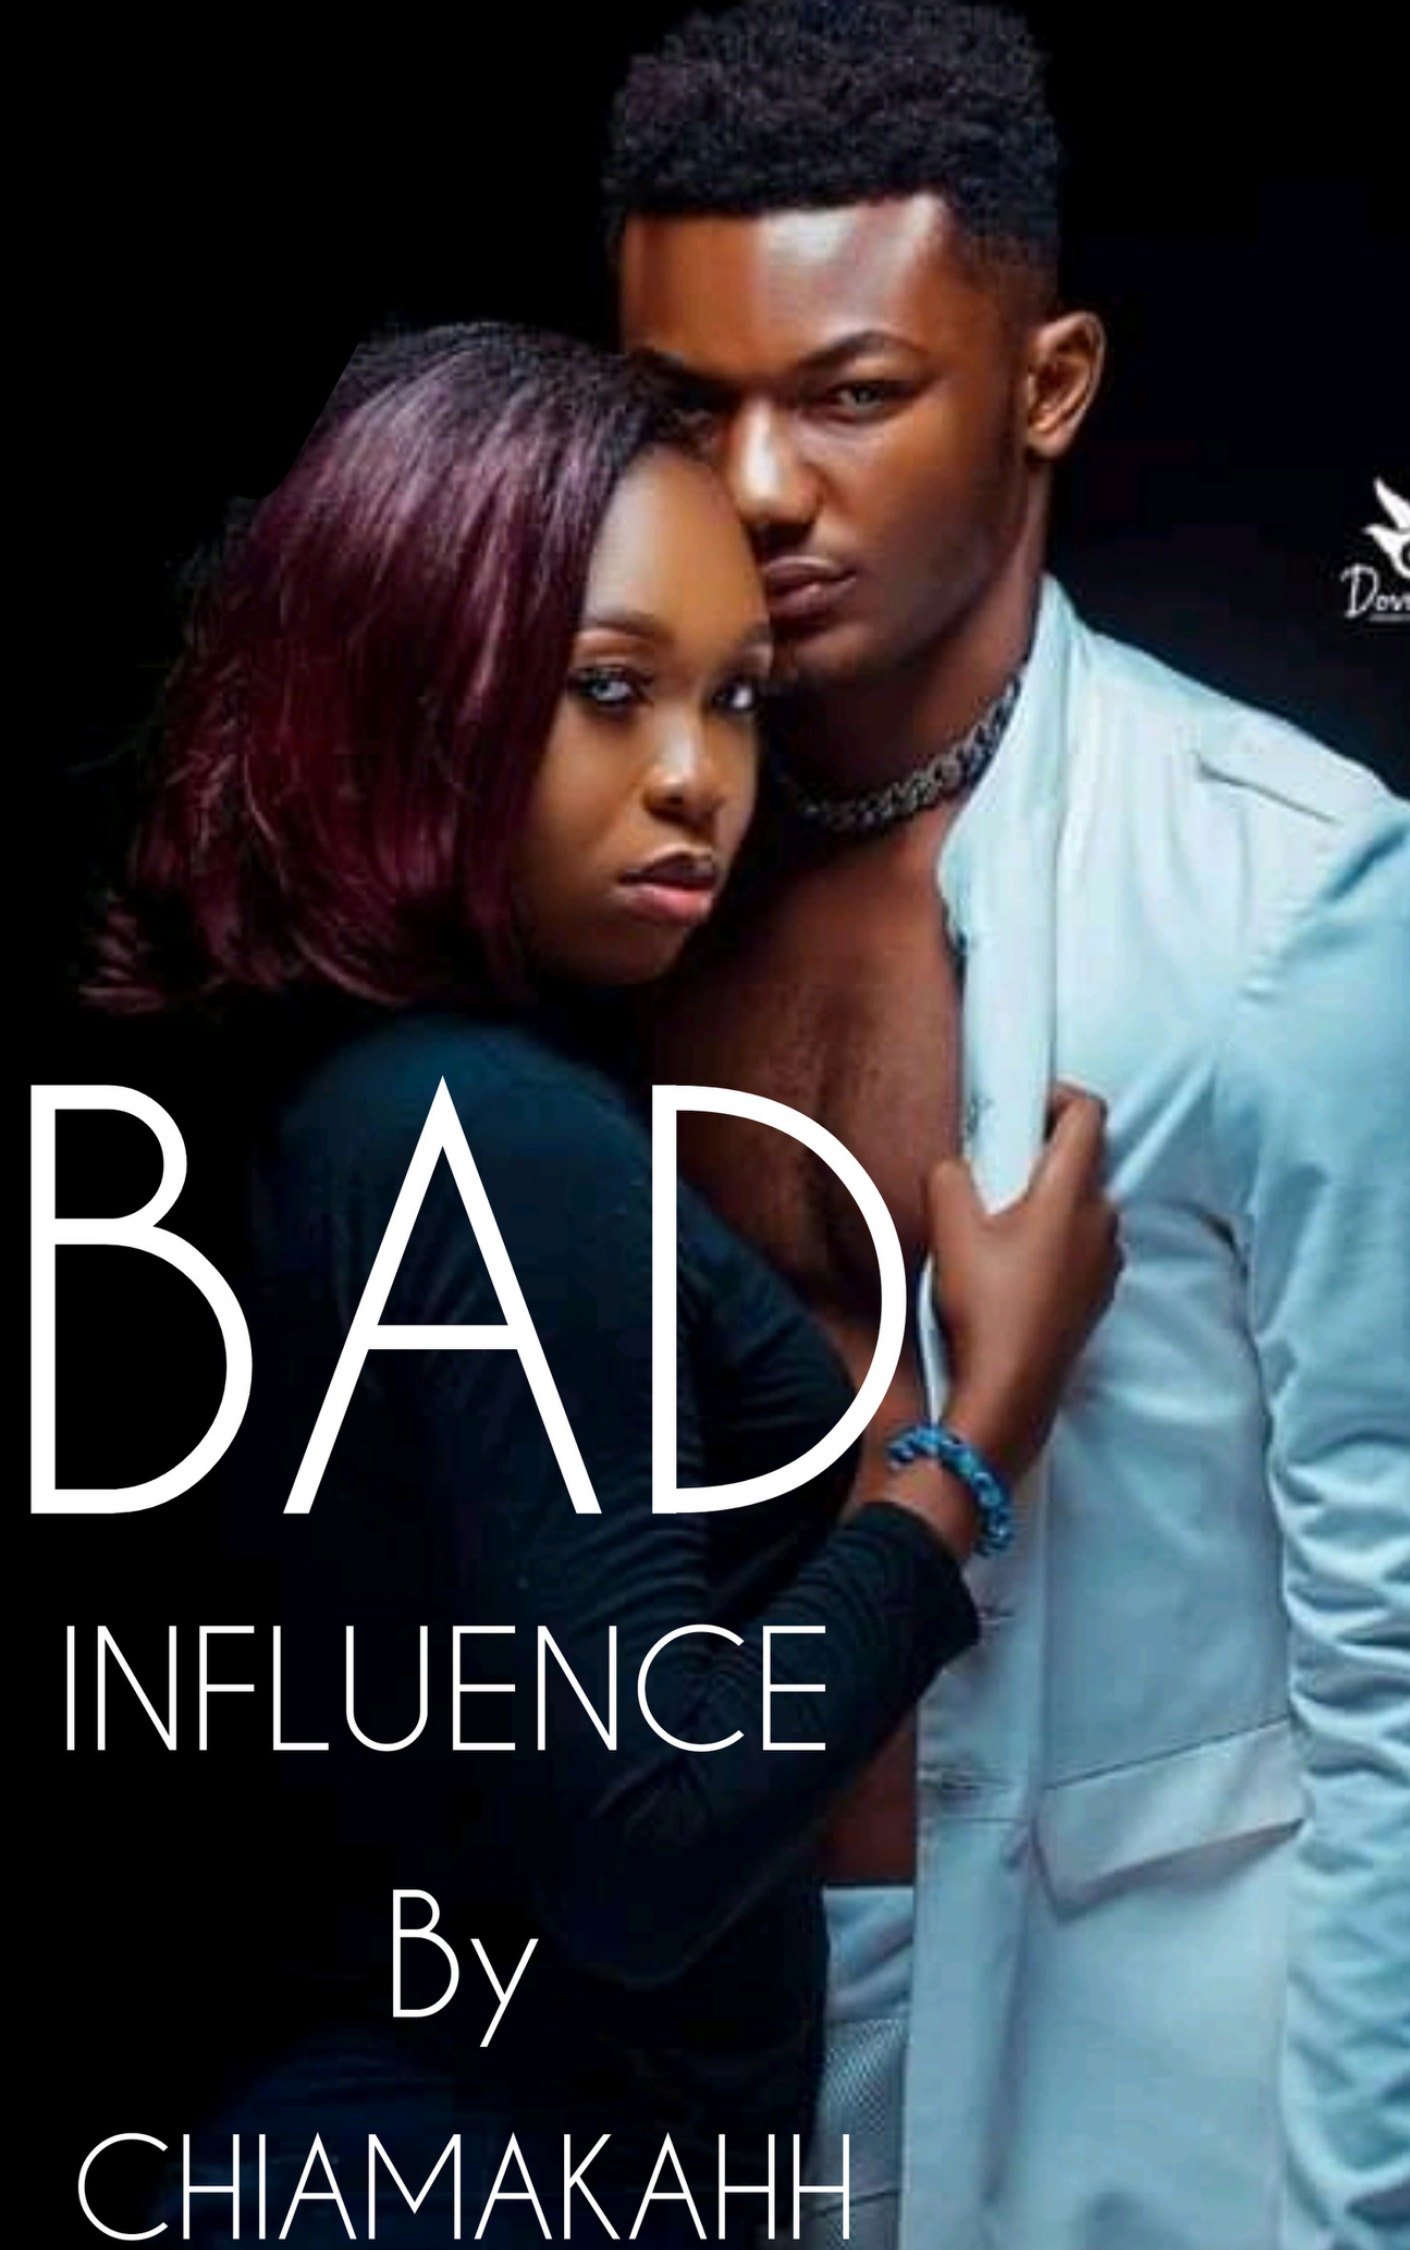 Bad influence Preview